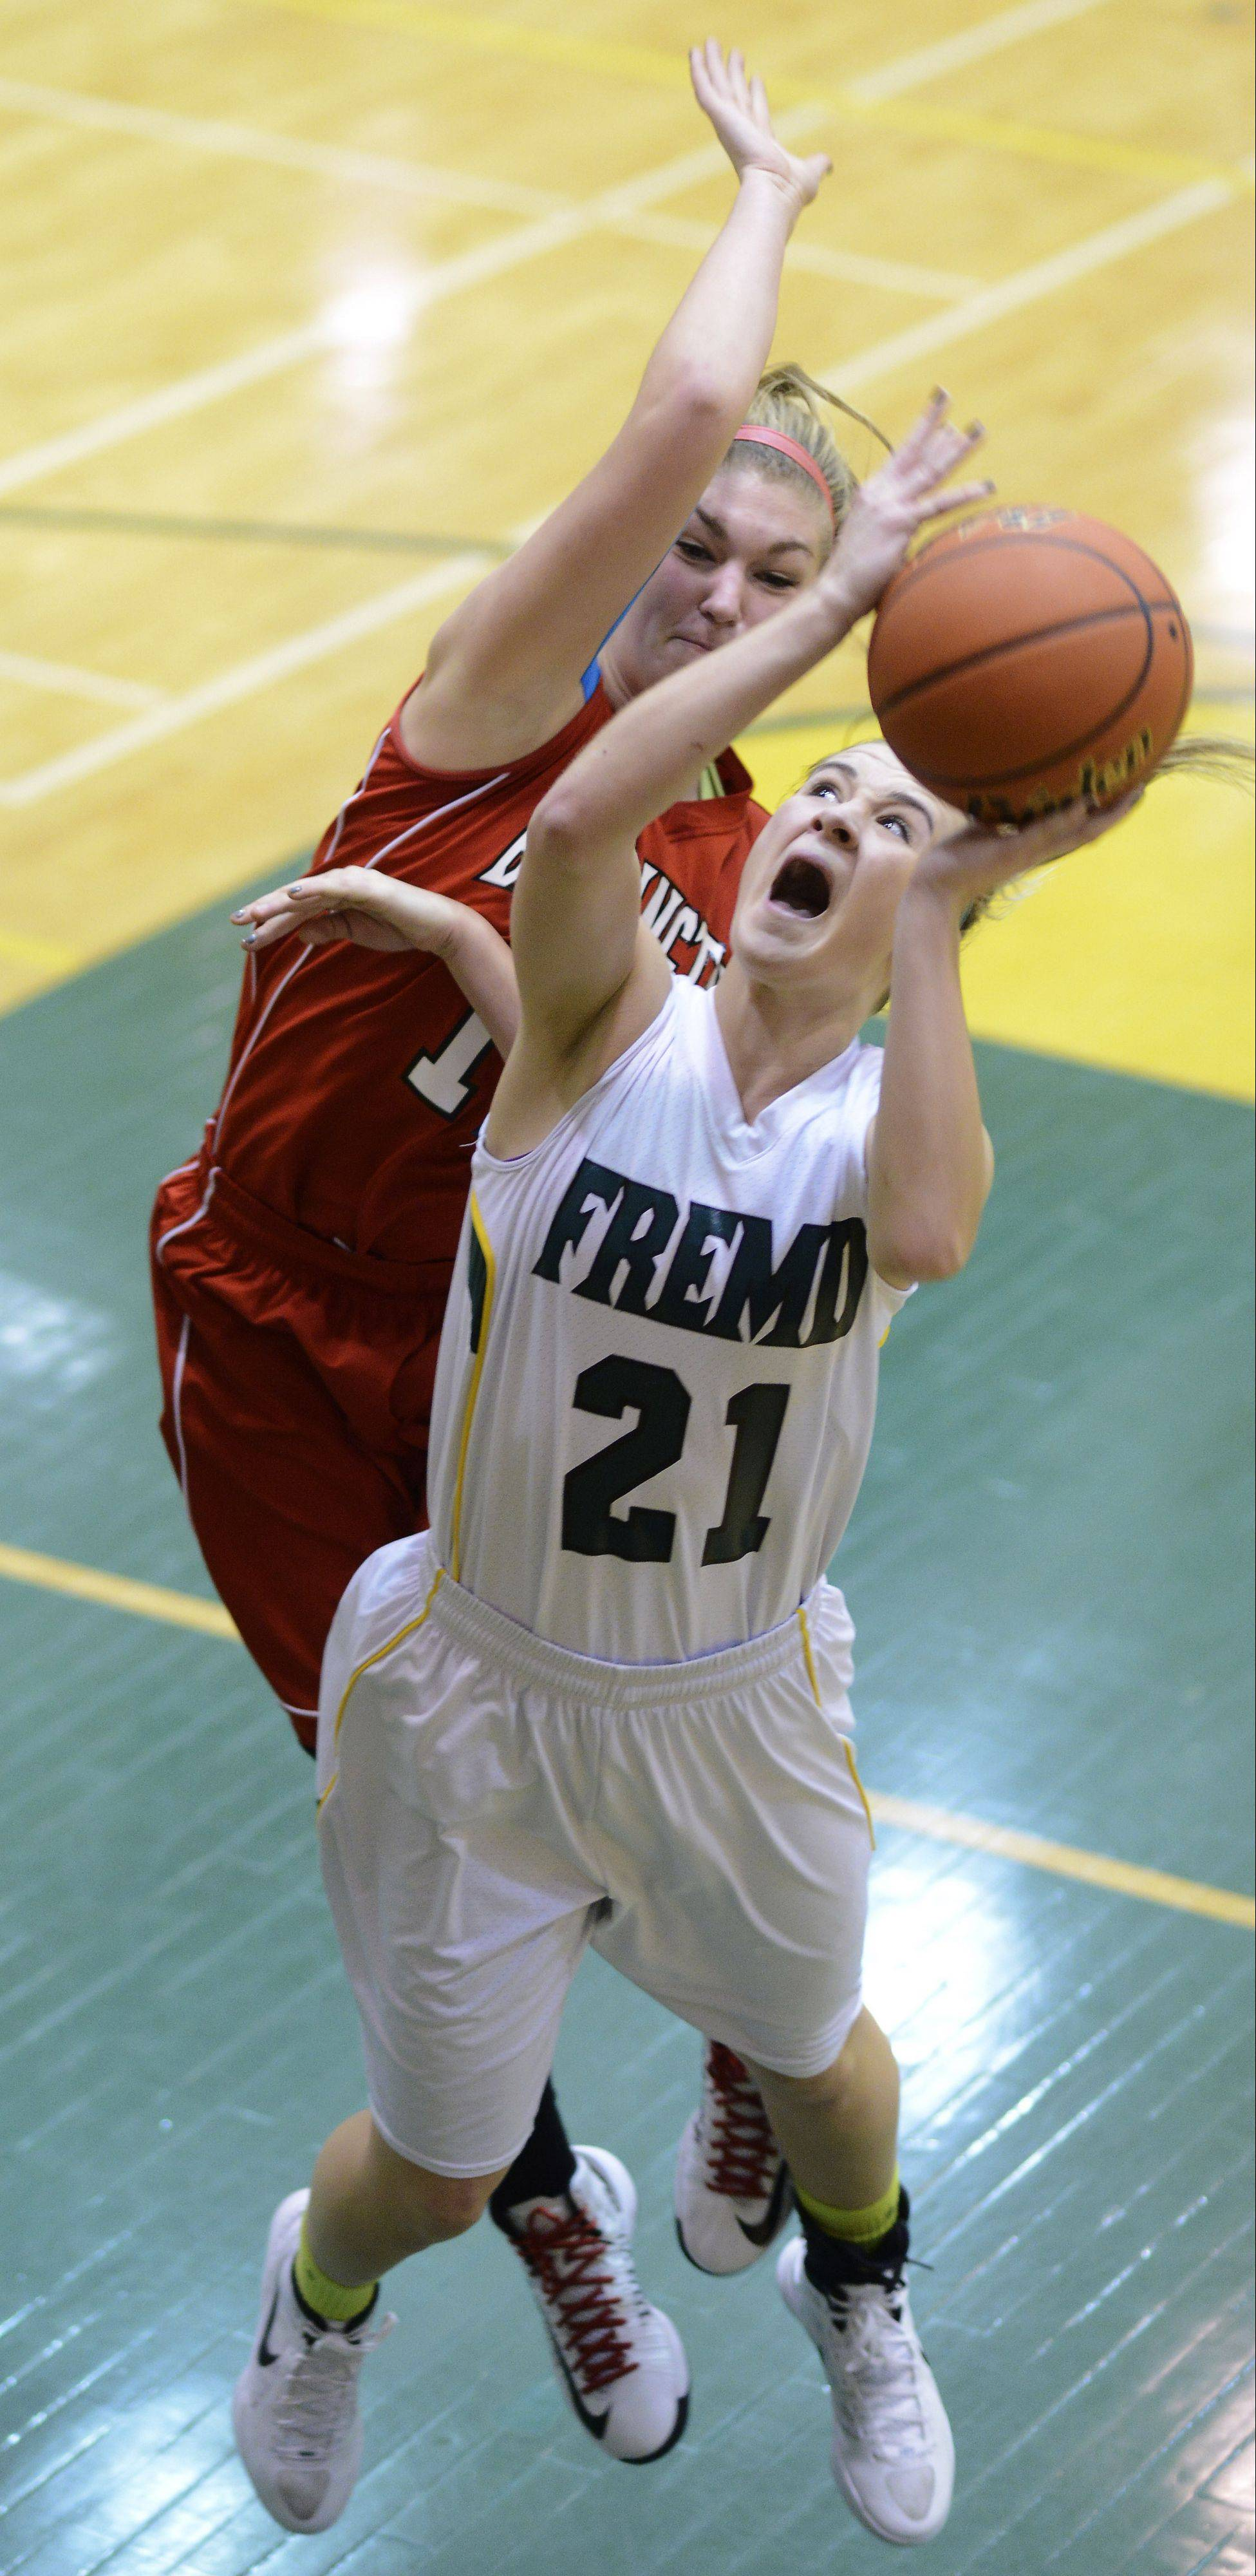 Fremd's Ashley McConnell gets fouled by Barrington's Maddie Bartz on a drive to the basket during Friday's game.